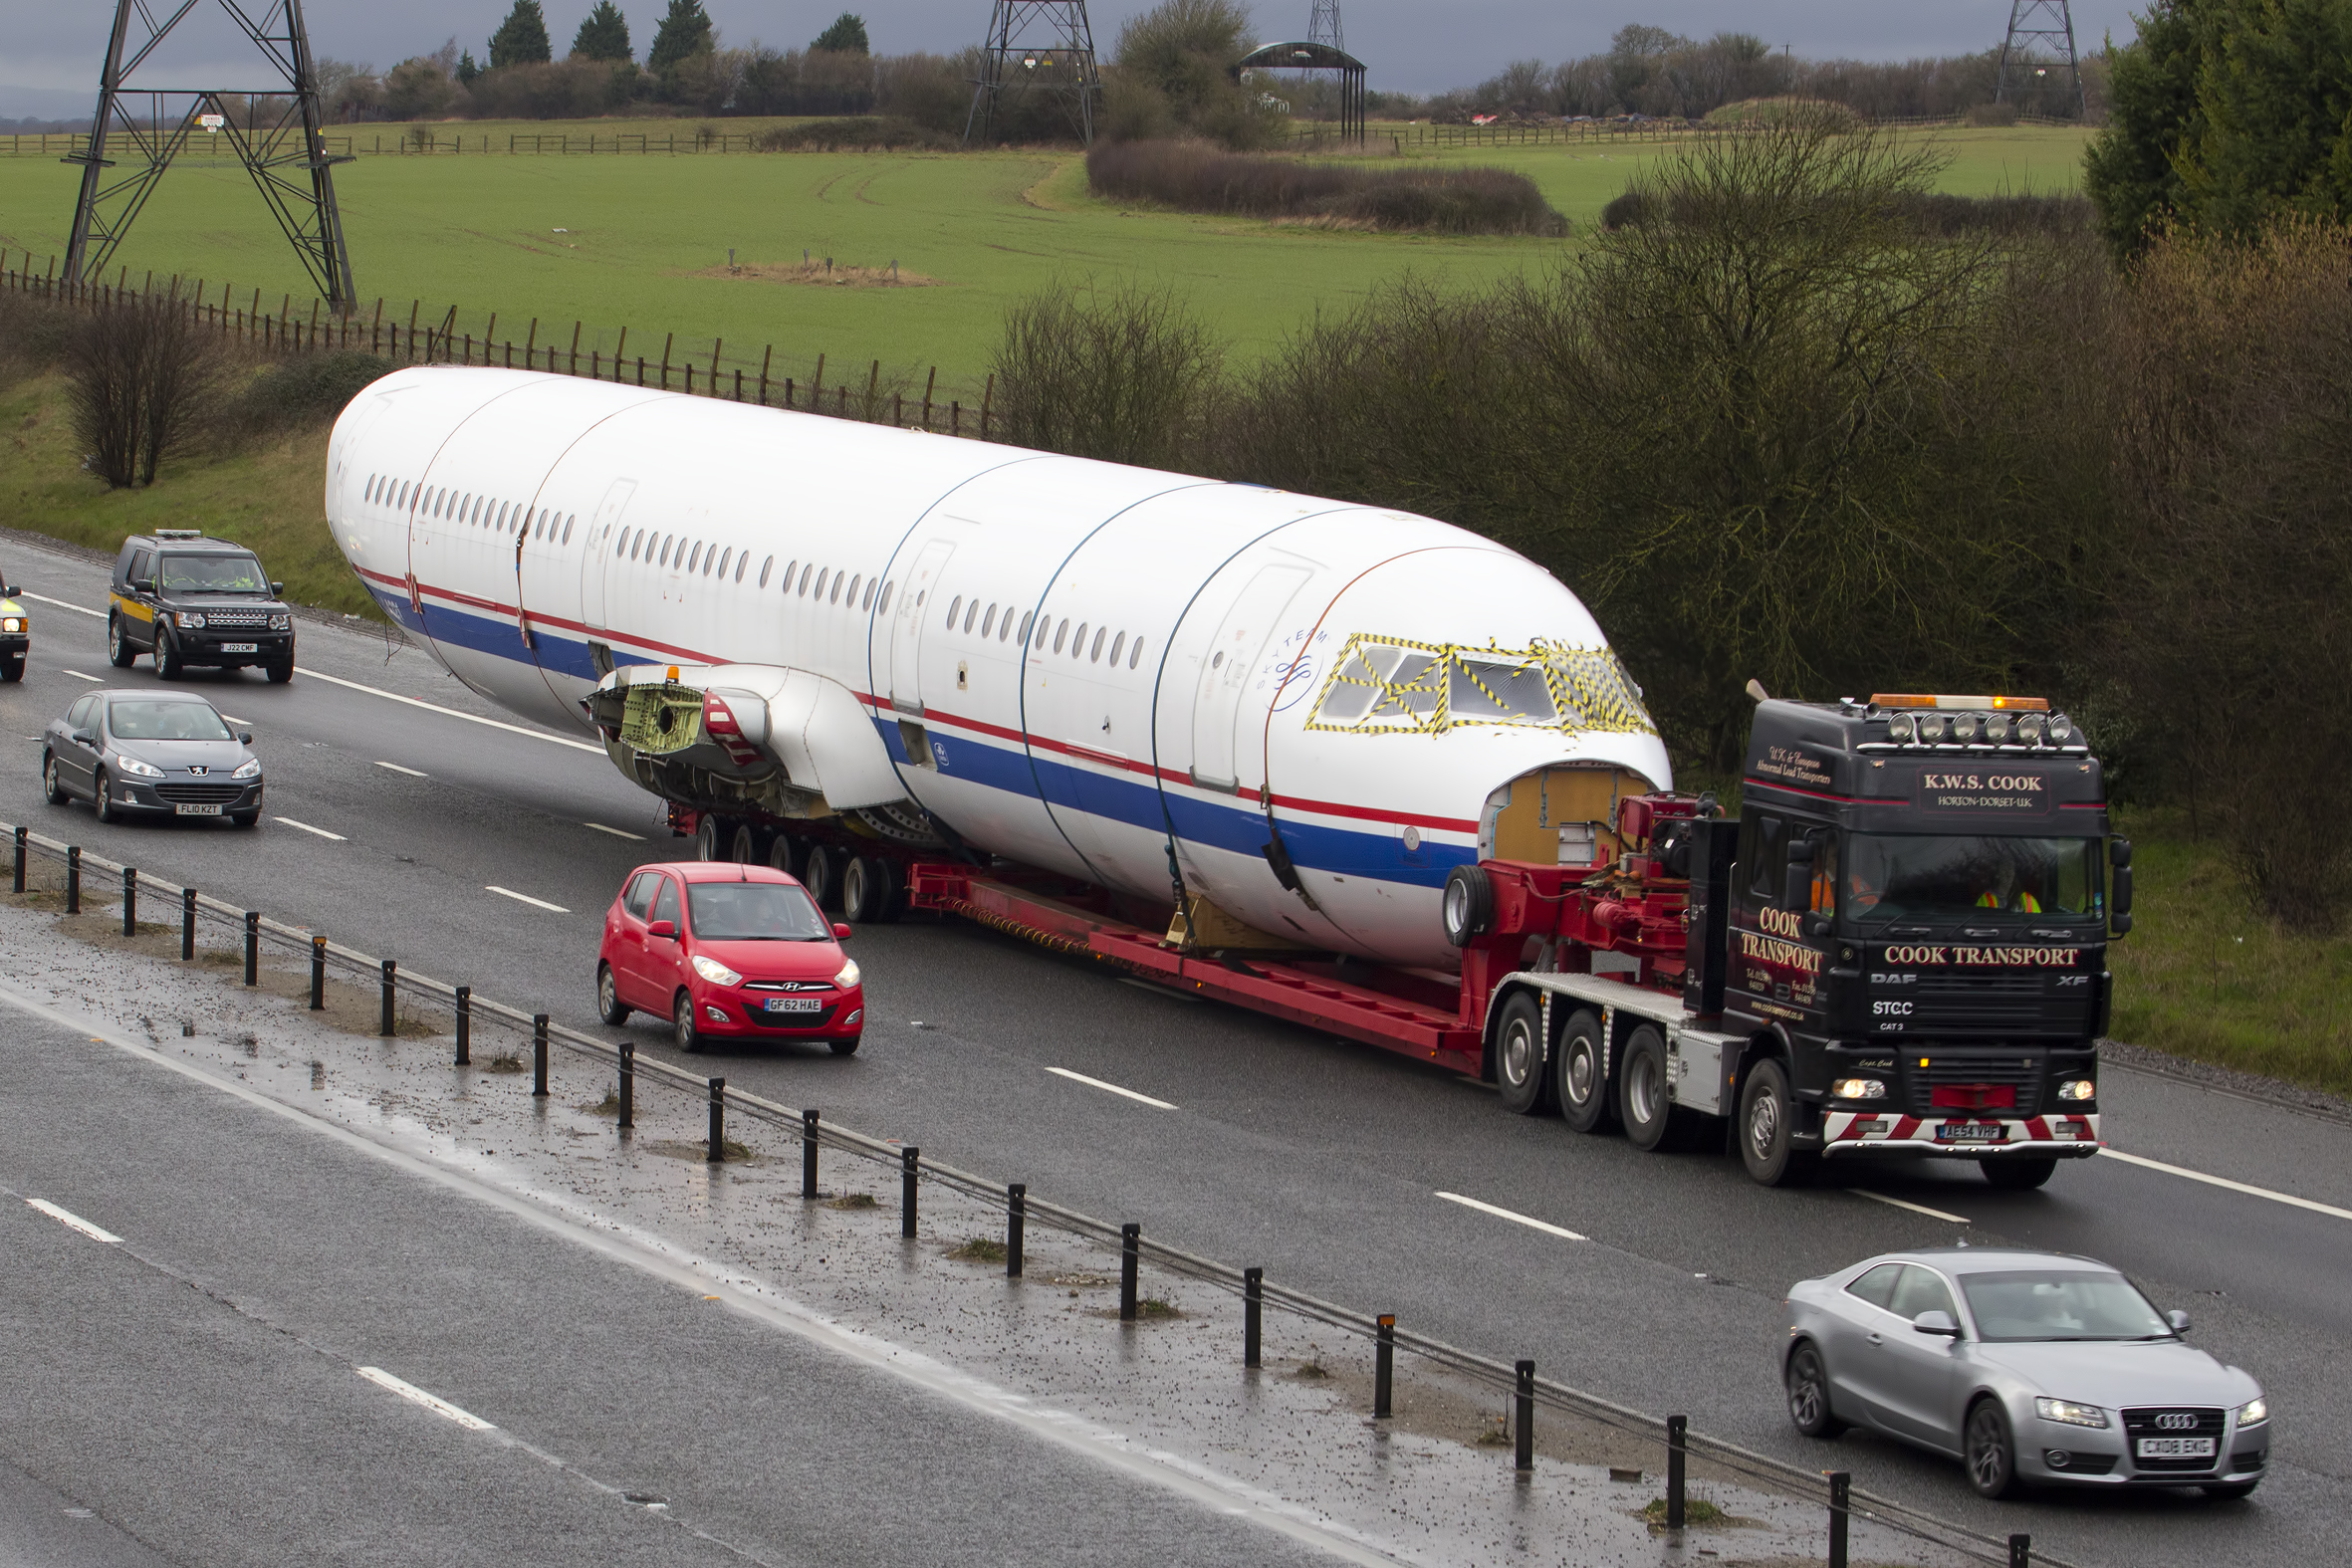 Wiltshire Police To Escort Airbus Aircraft Fuselage On M4 And A419 Swindon Advertiser